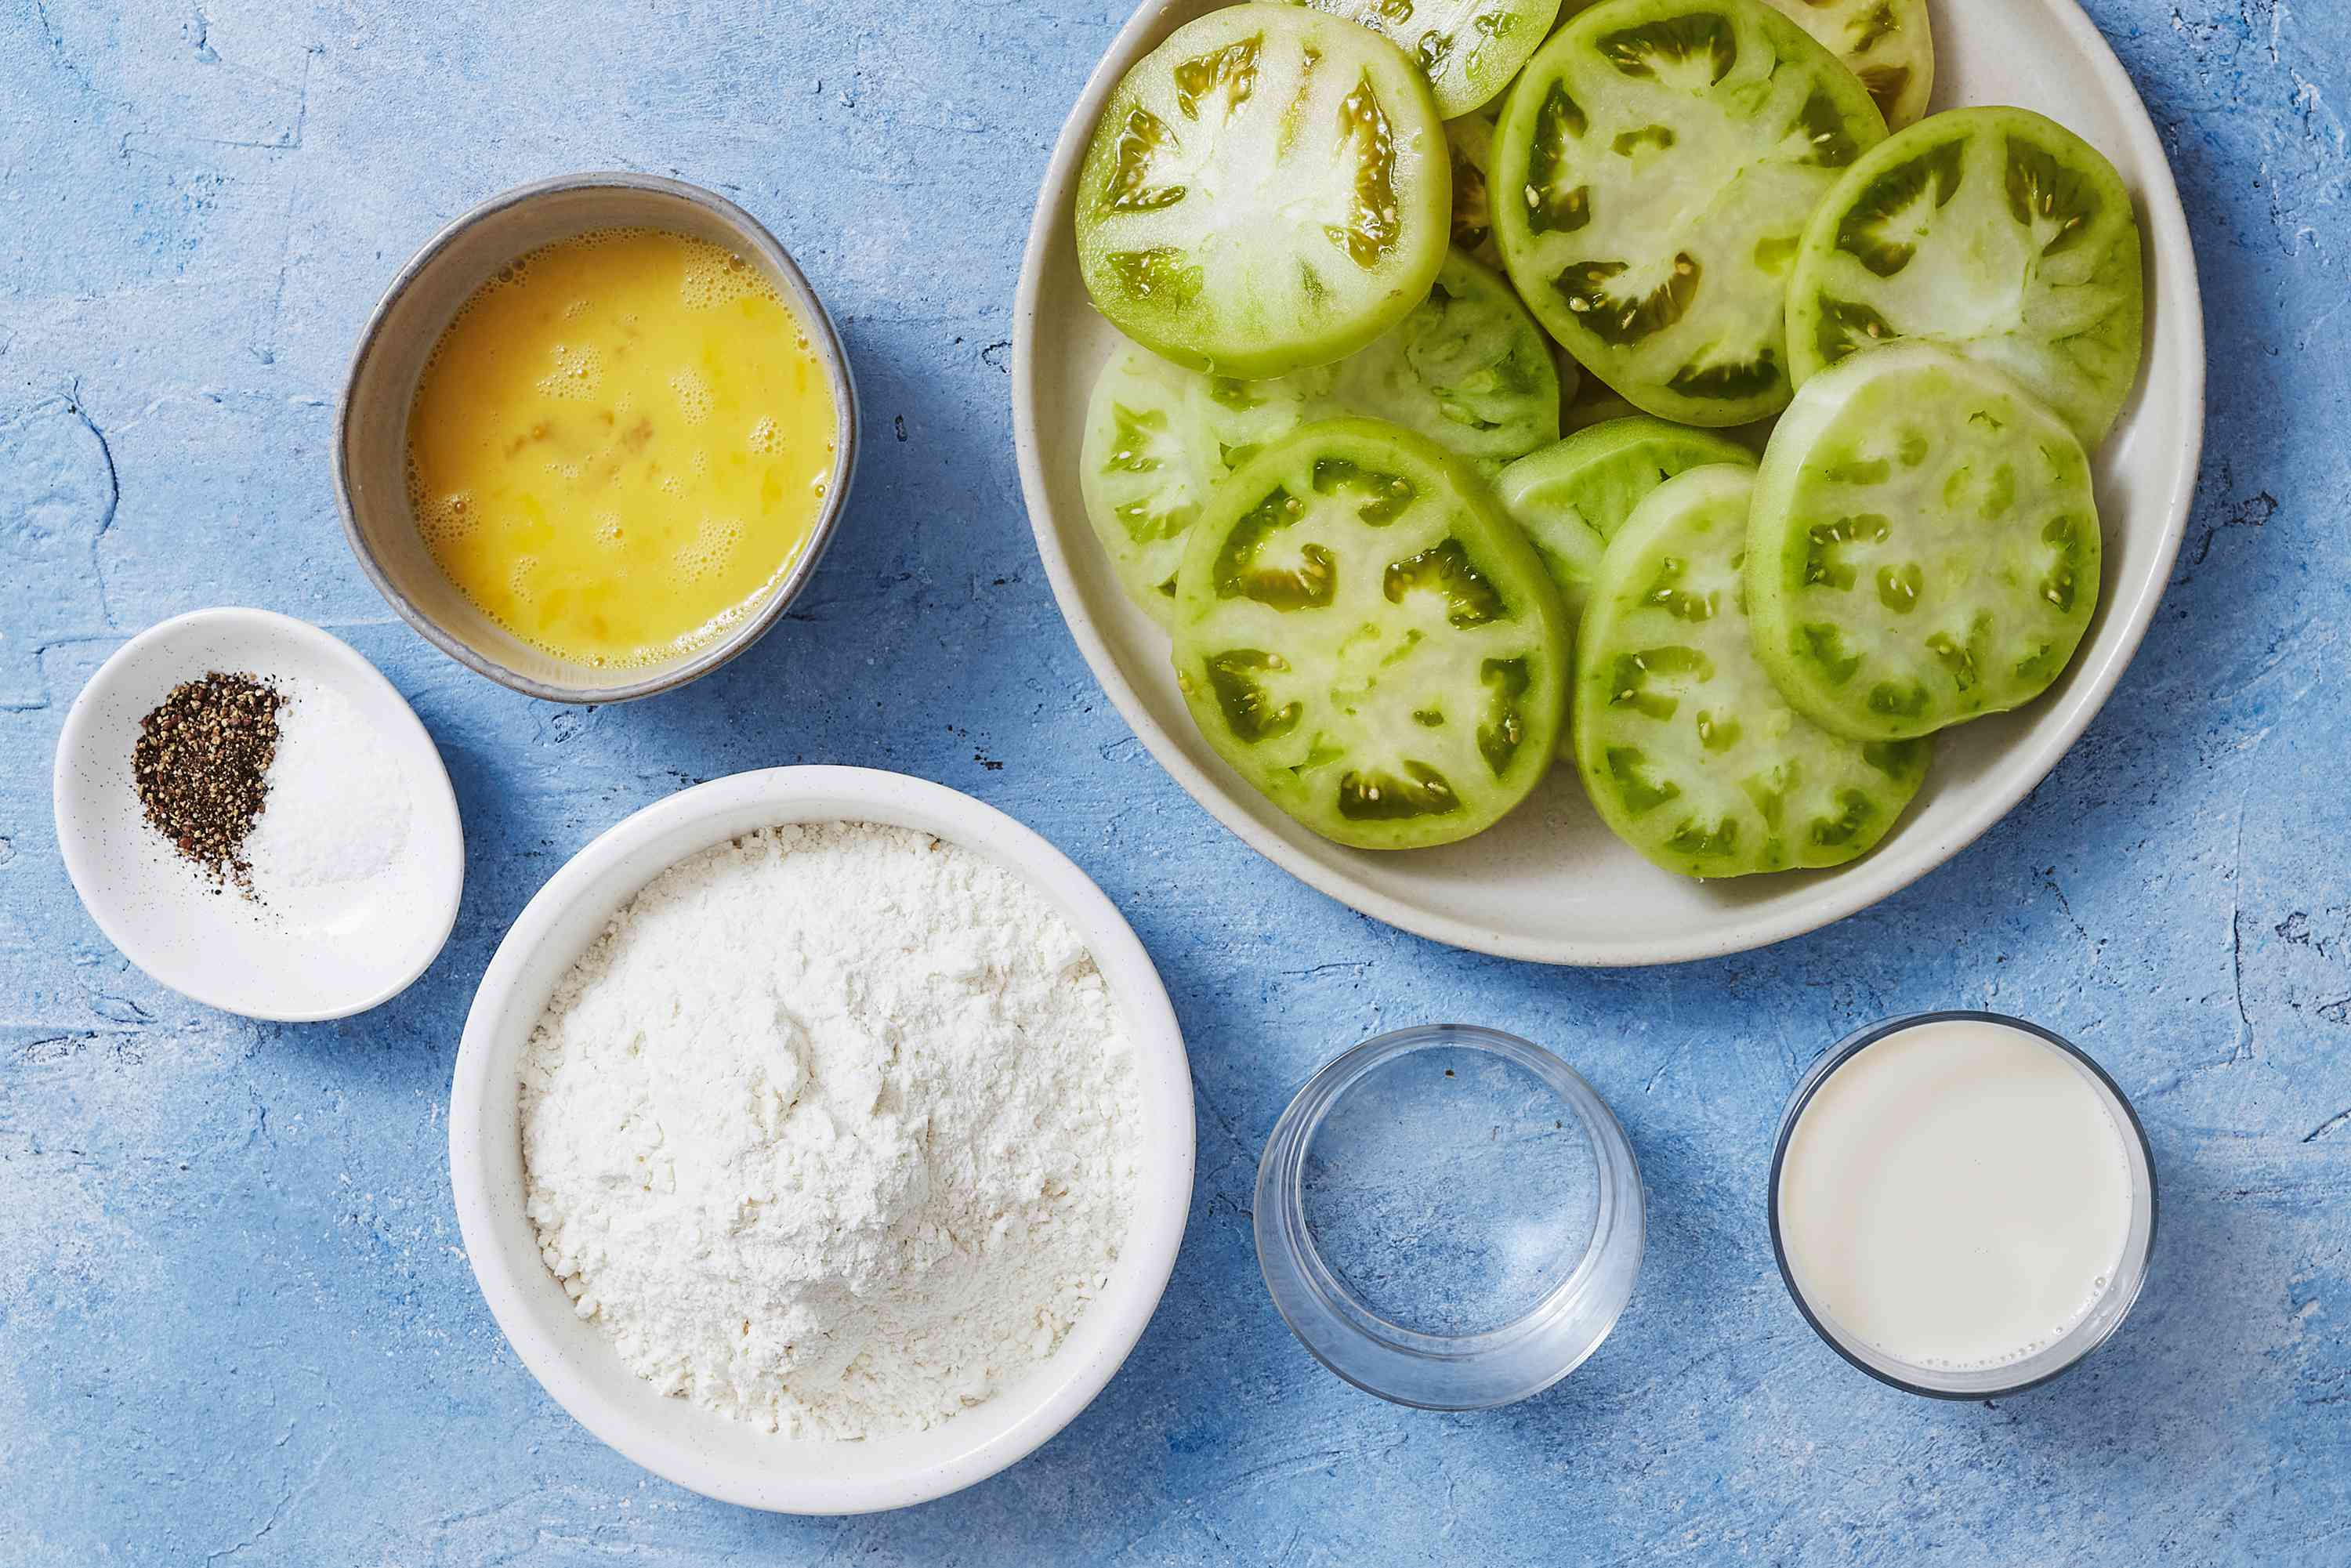 Ingredients to make oven-fried green tomatoes